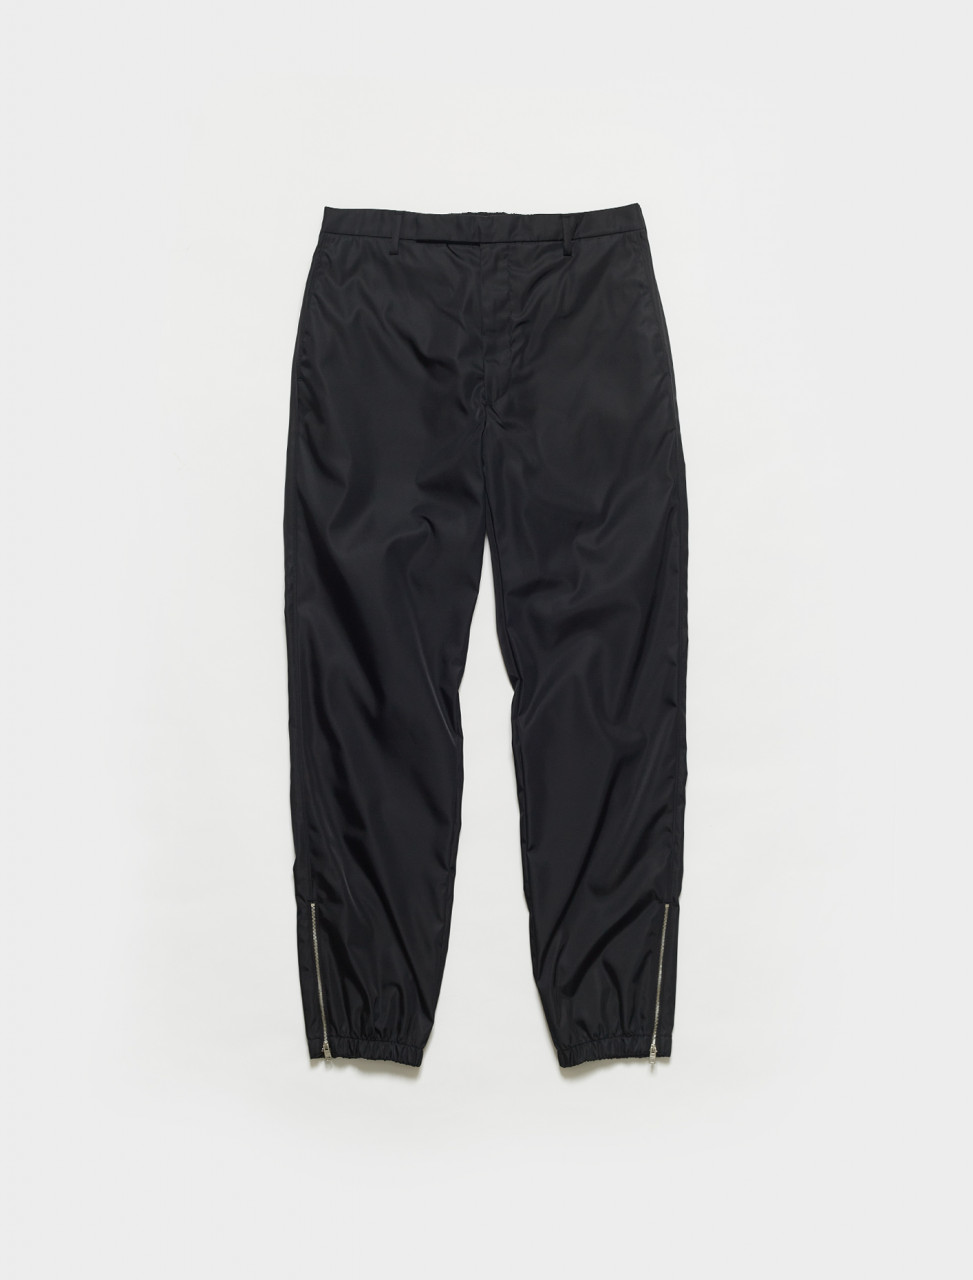 SPH109-F0002 PRADA RE-NYLON STRAIGHT FIT TROUSER IN BLACK